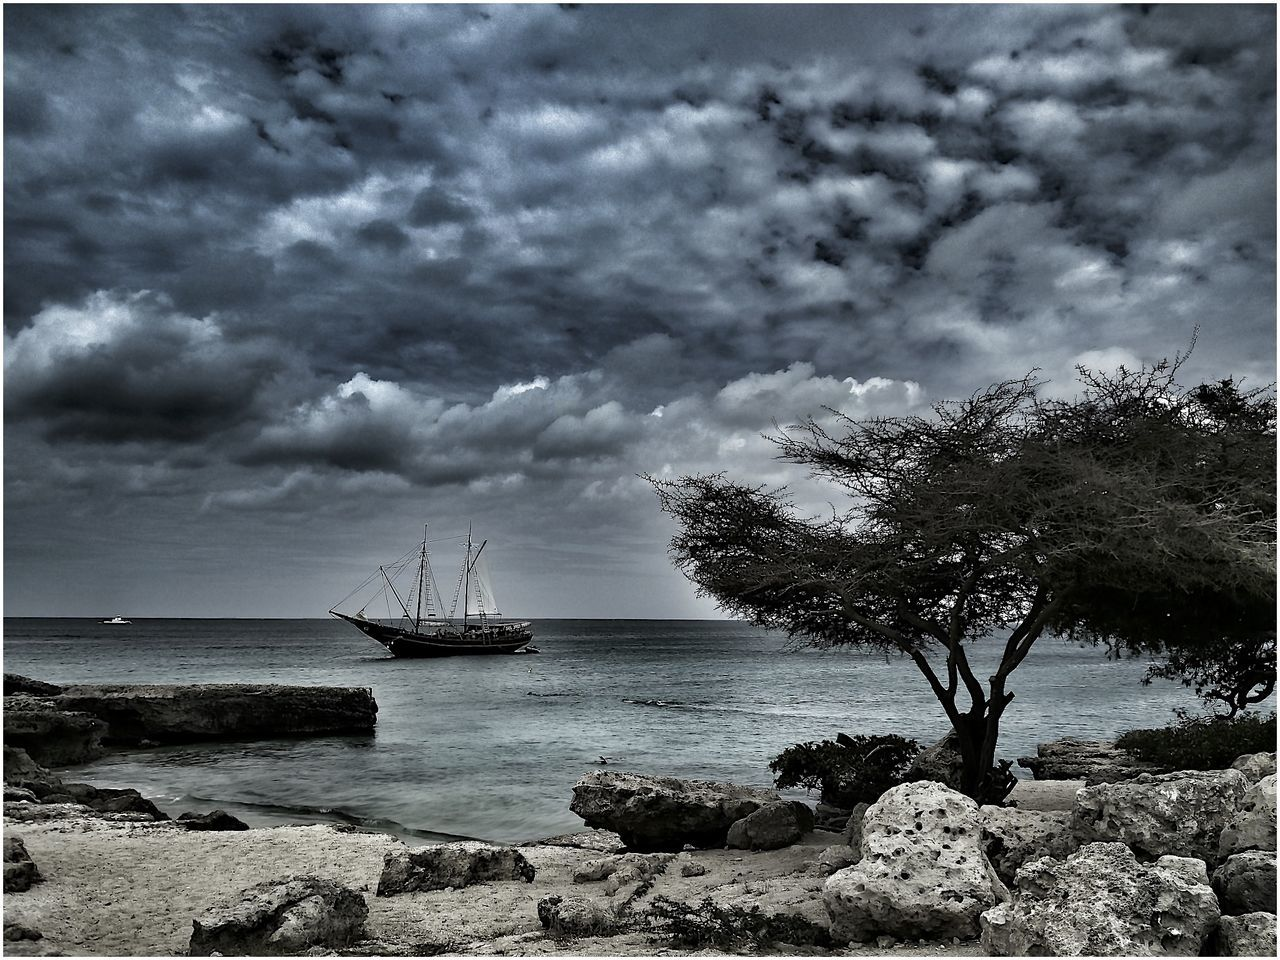 water, sea, sky, cloud - sky, nature, rock - object, horizon over water, beauty in nature, scenics, tranquility, weather, outdoors, no people, tranquil scene, transportation, nautical vessel, day, beach, tree, storm cloud